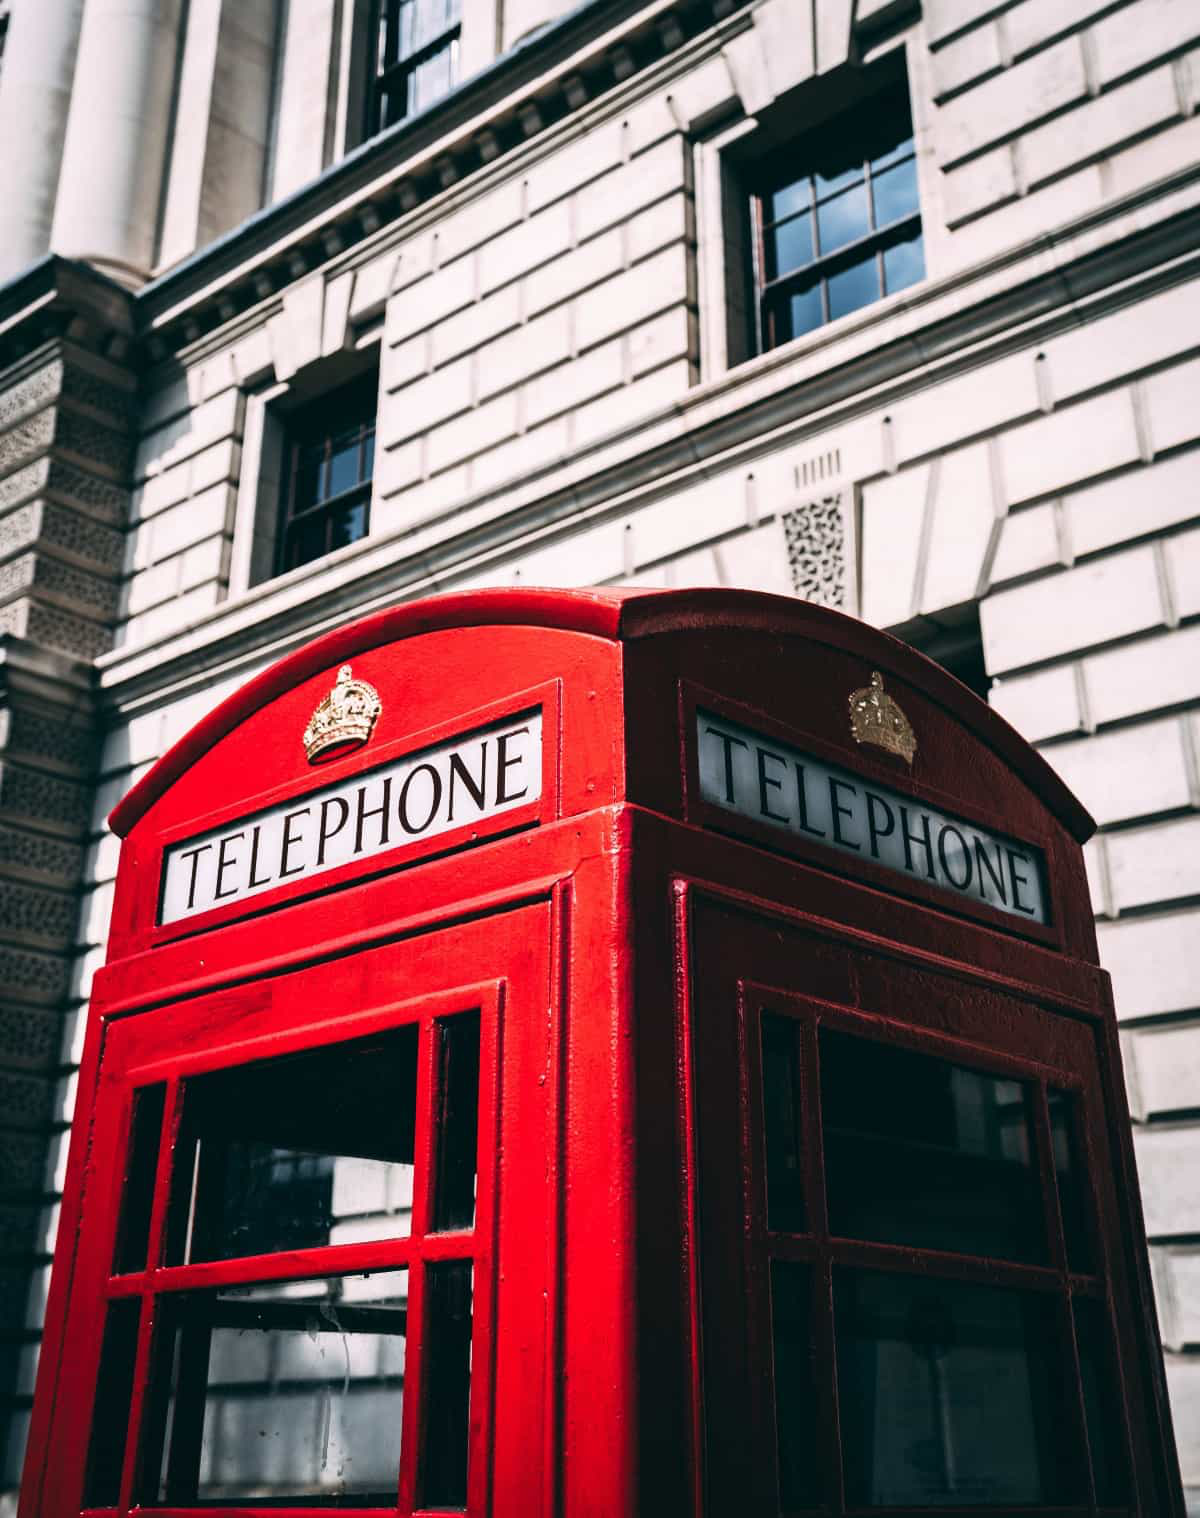 british red telephone box in front of building